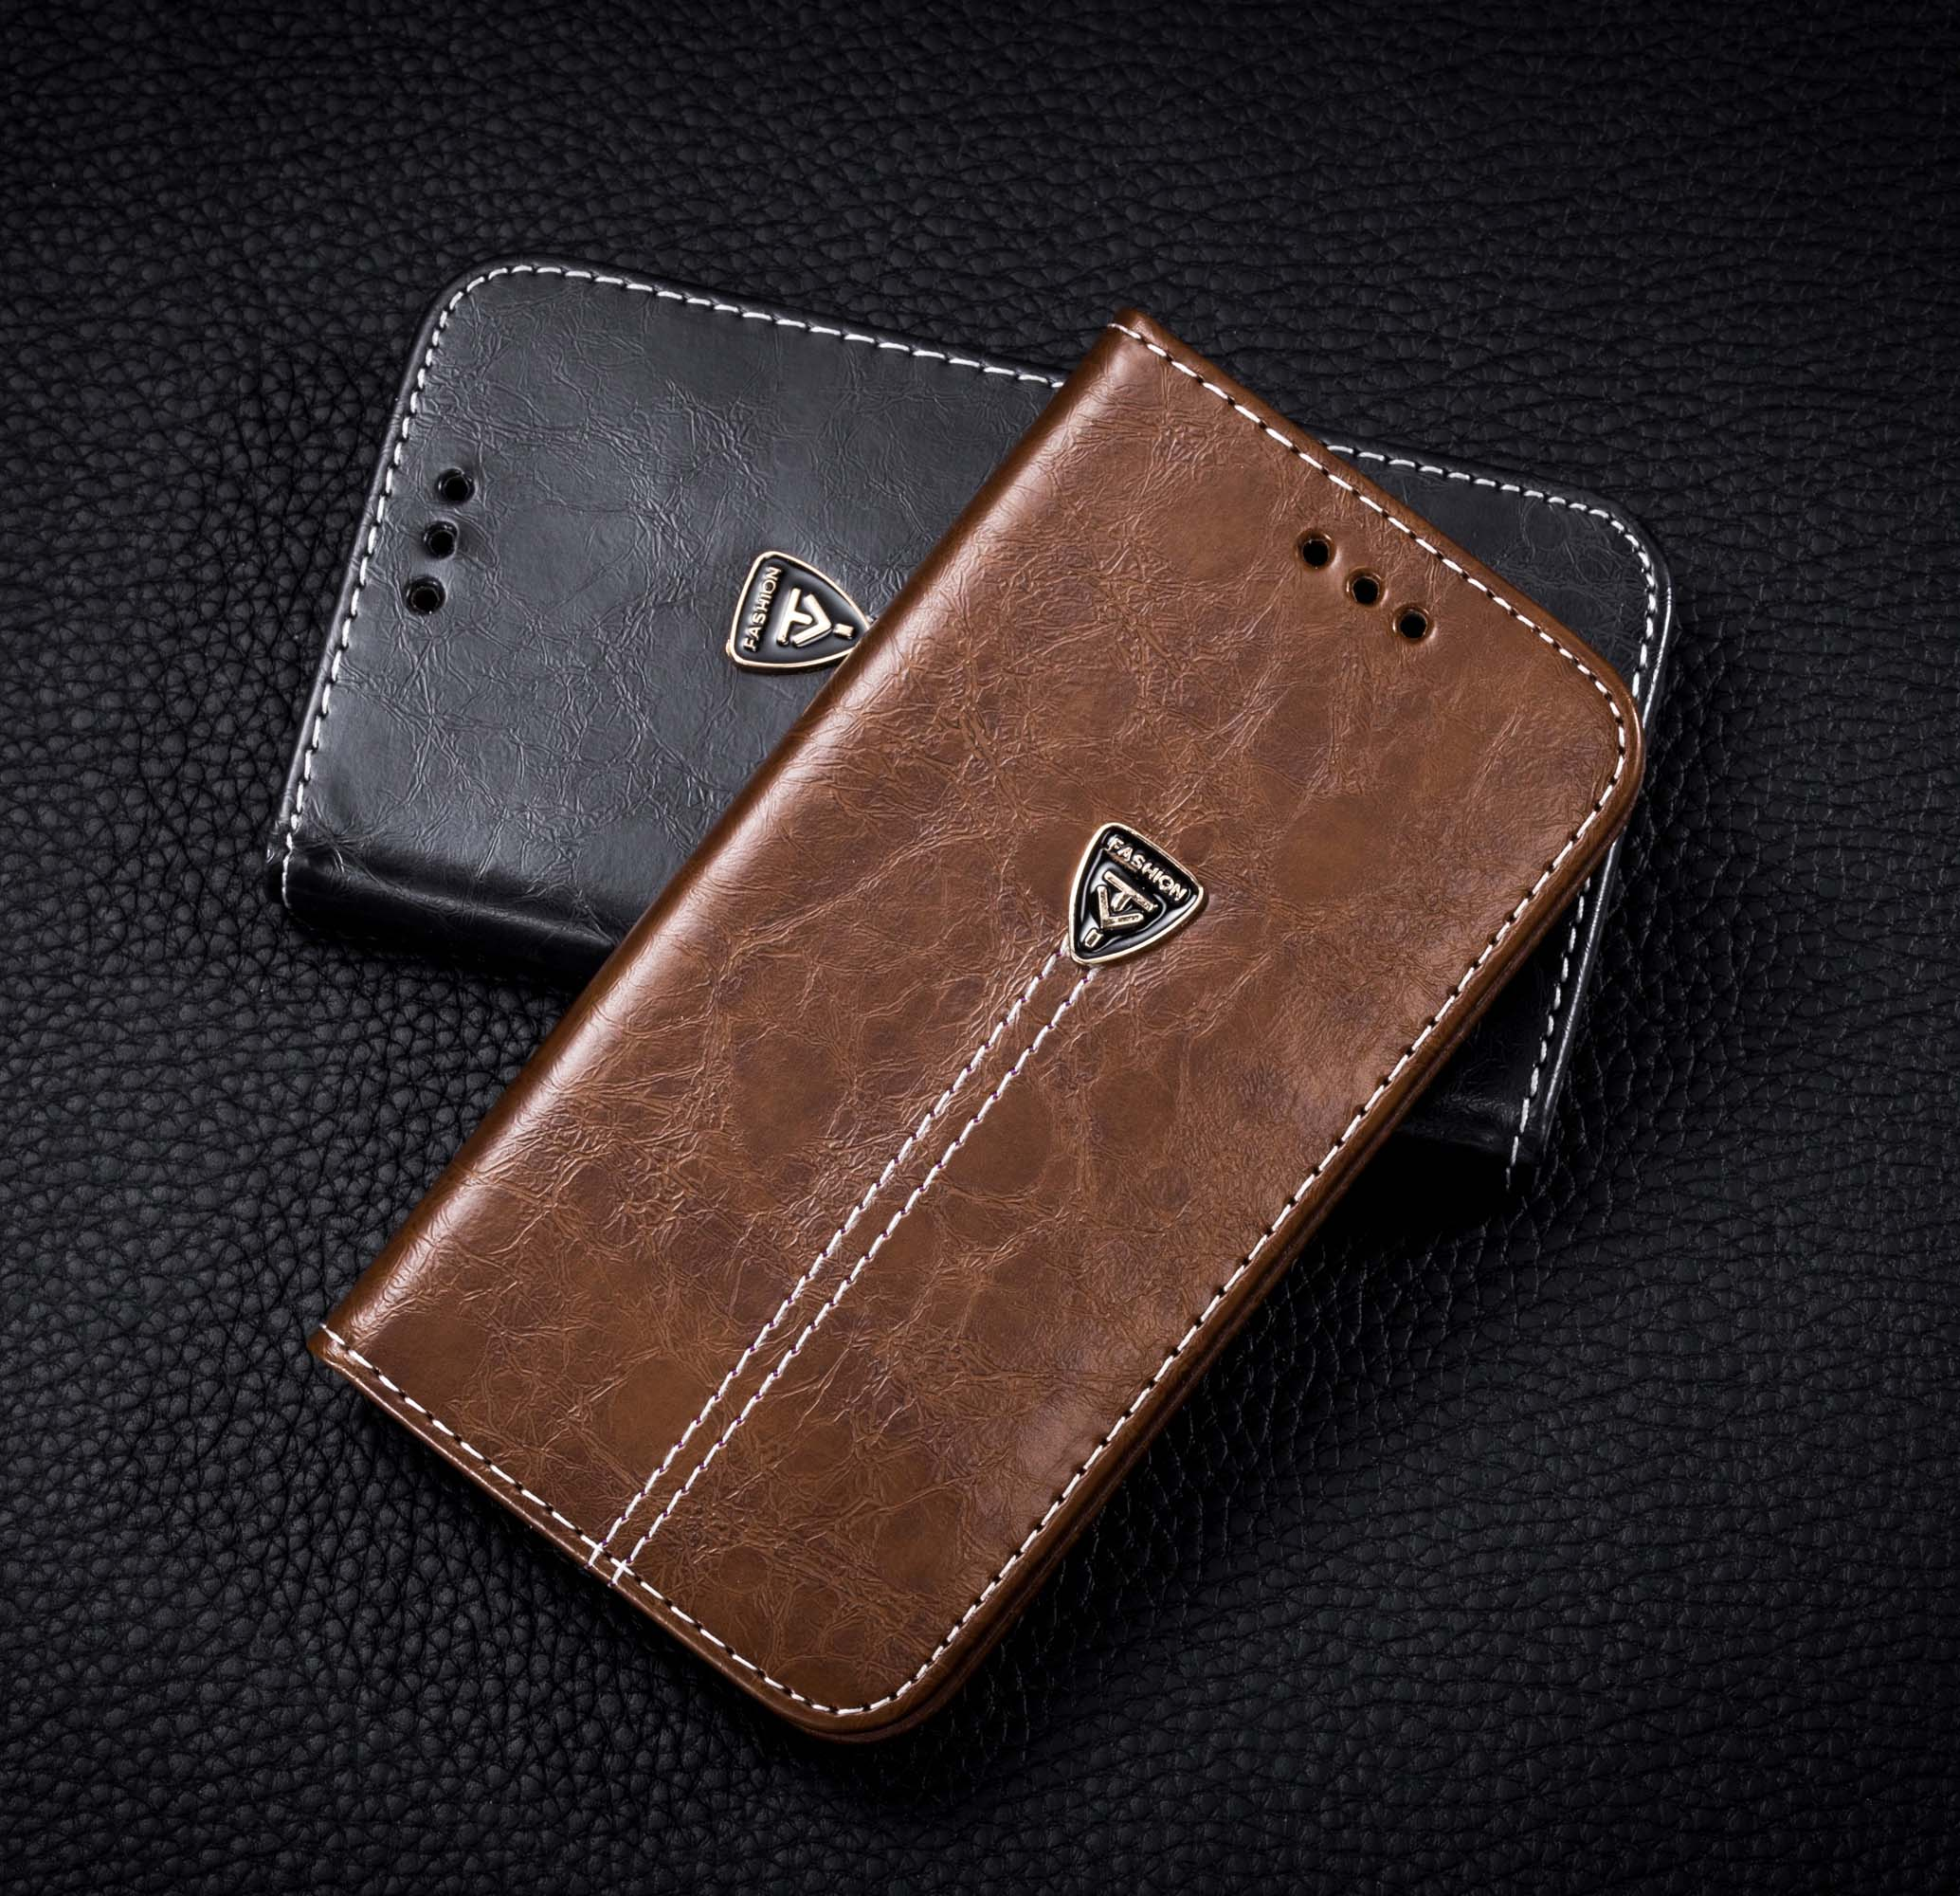 2016 New For Sony C4 Case 4 Color Card Slot Leather Stand Case for Sony Xperia C4 E5303 / C4 Dual E5333